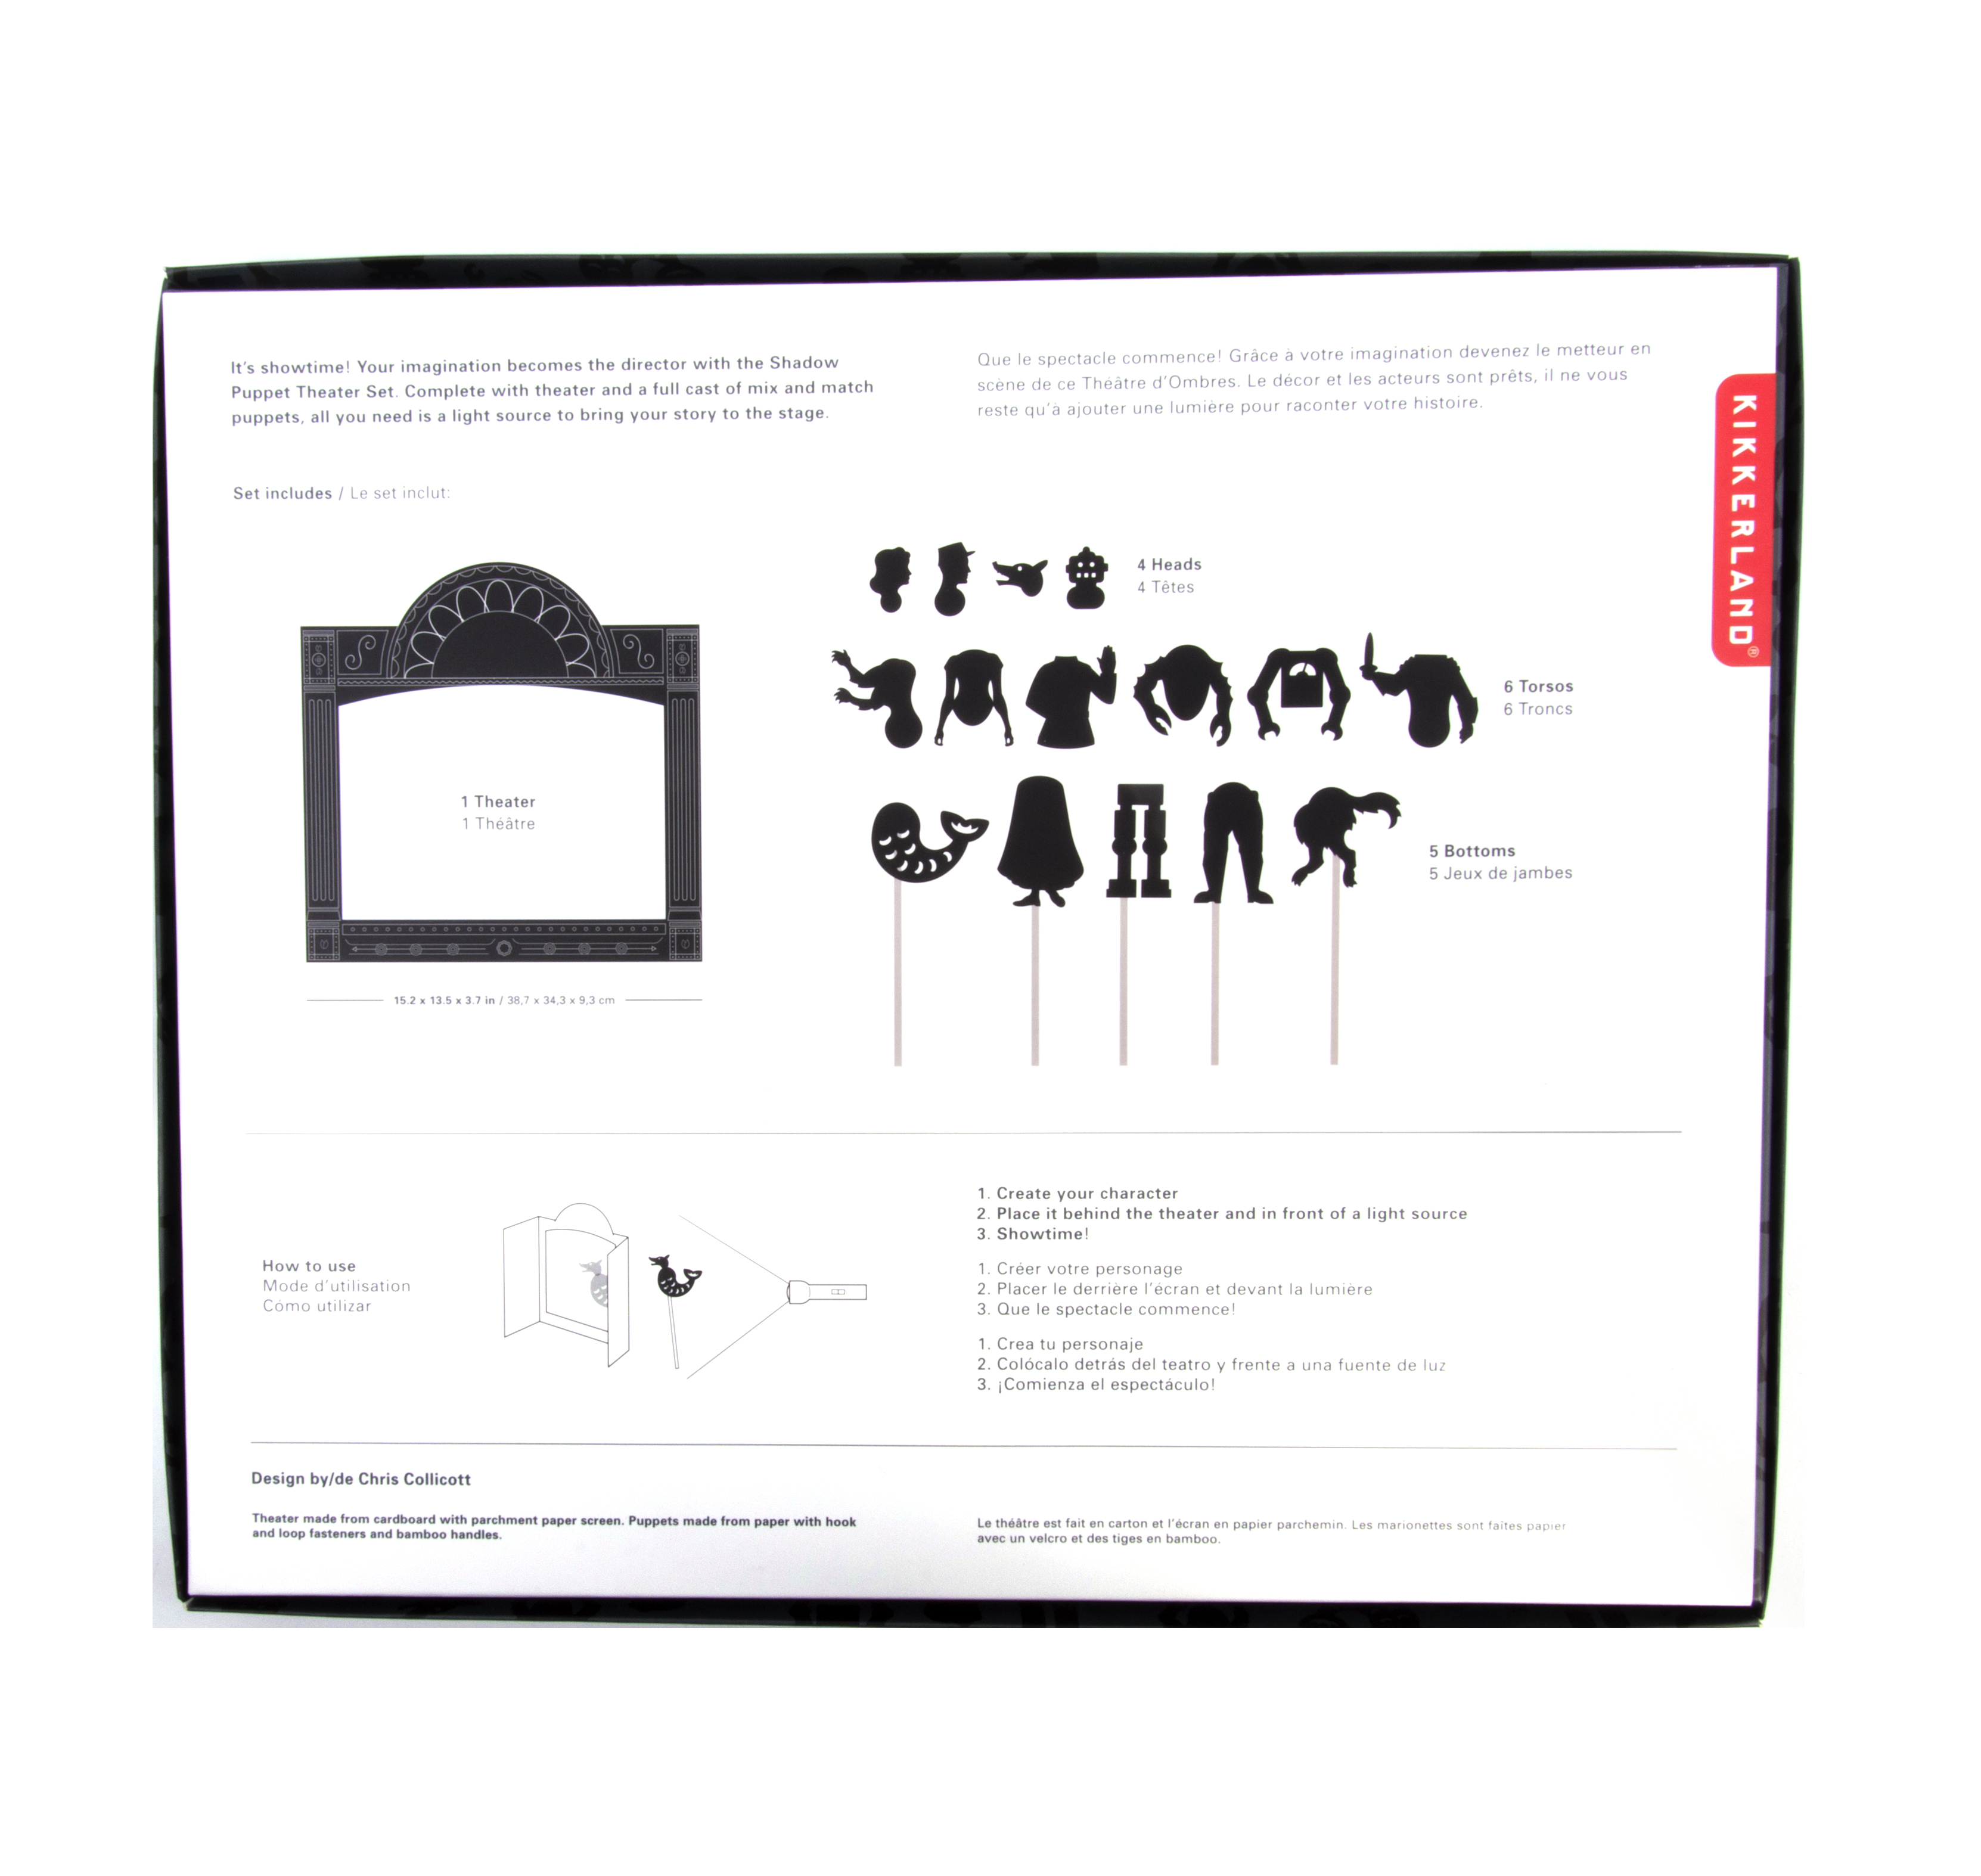 Shadow Puppet Theatre Set